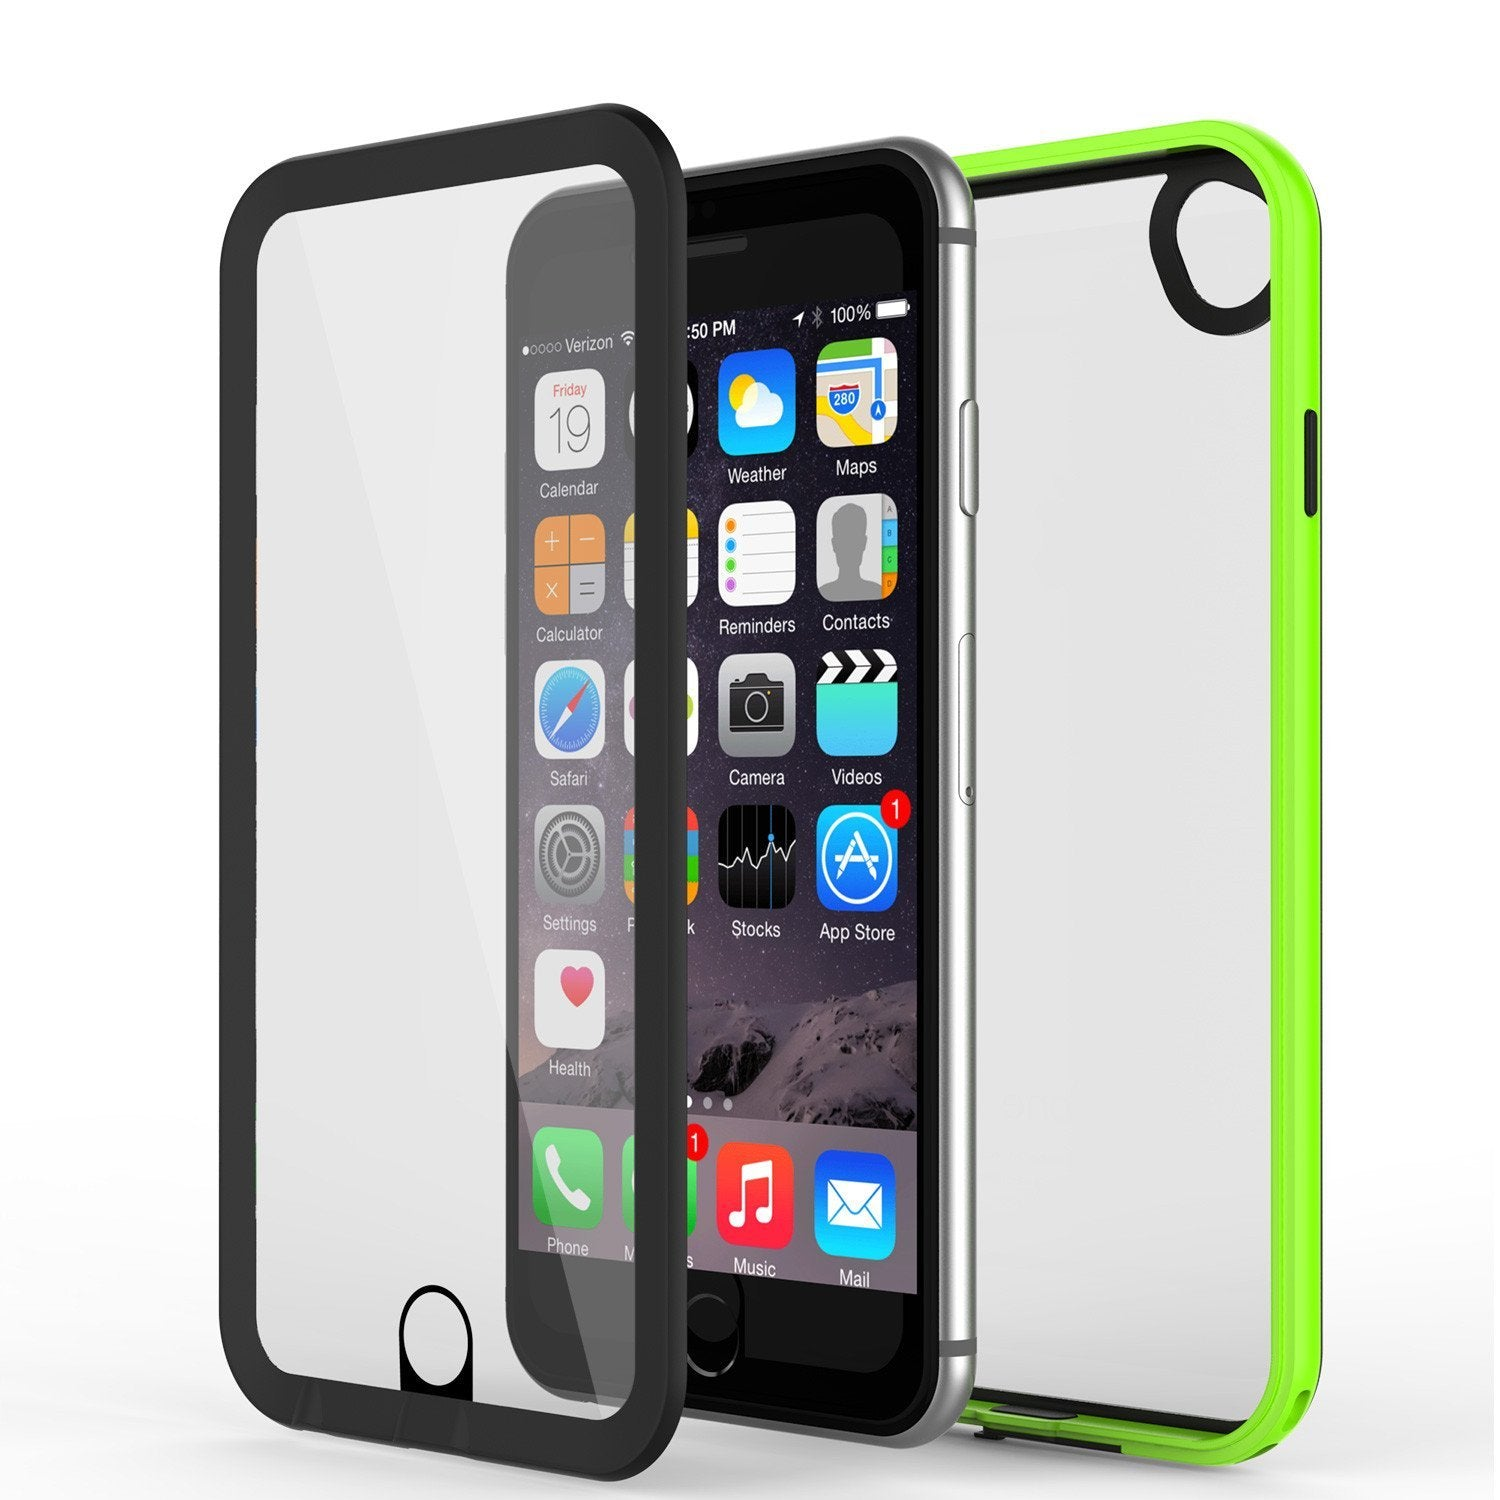 Apple iPhone 8 Waterproof Case, PUNKcase CRYSTAL 2.0 Light Green  W/ Attached Screen Protector  | Warranty - PunkCase NZ